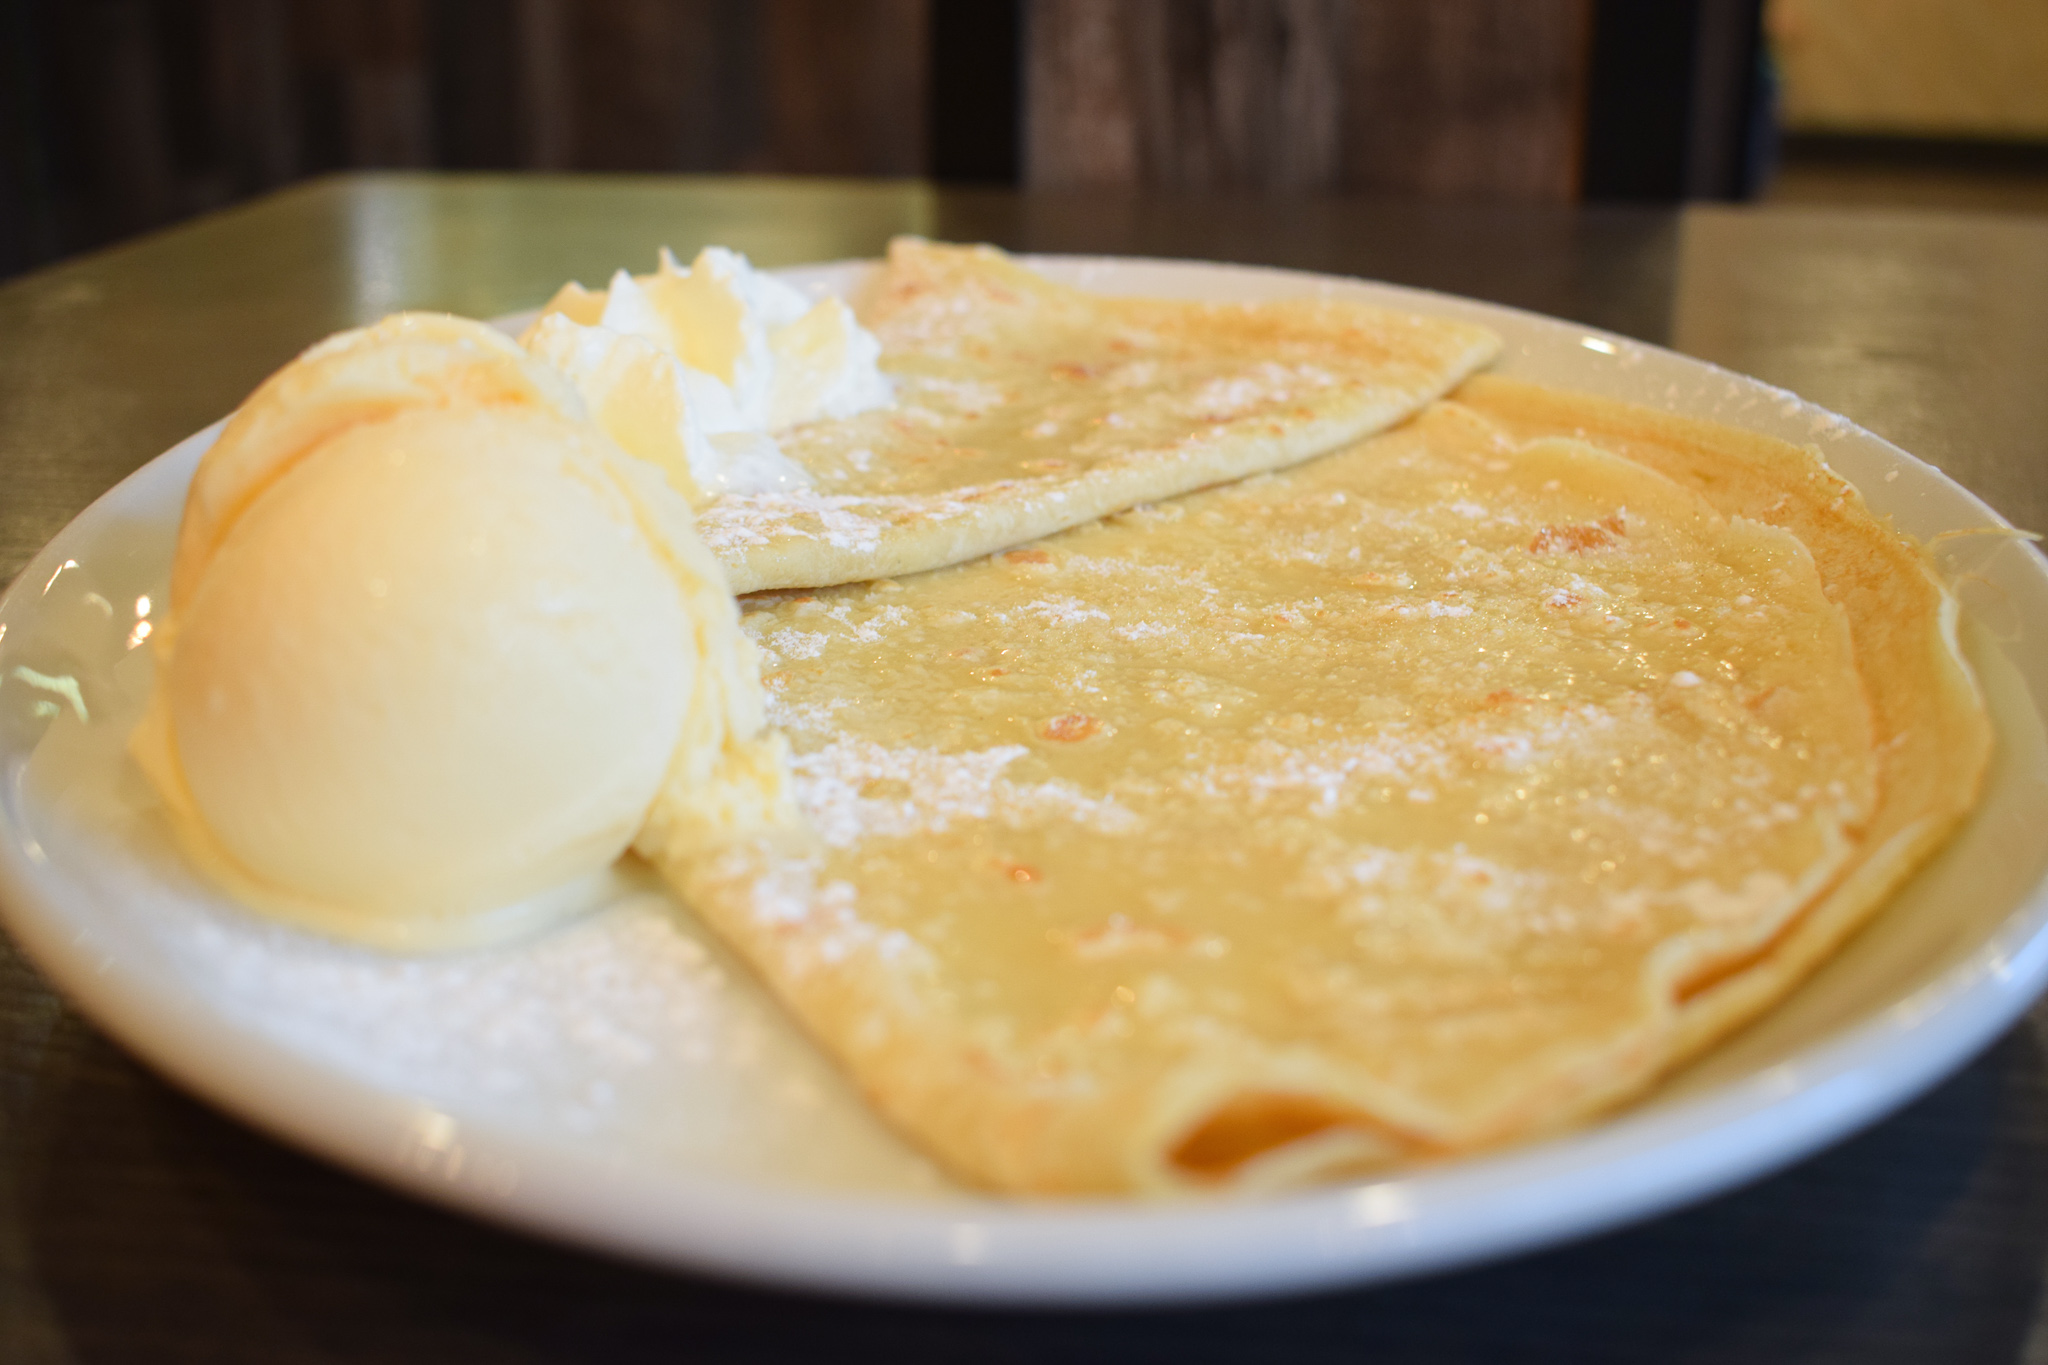 The Original Crepe